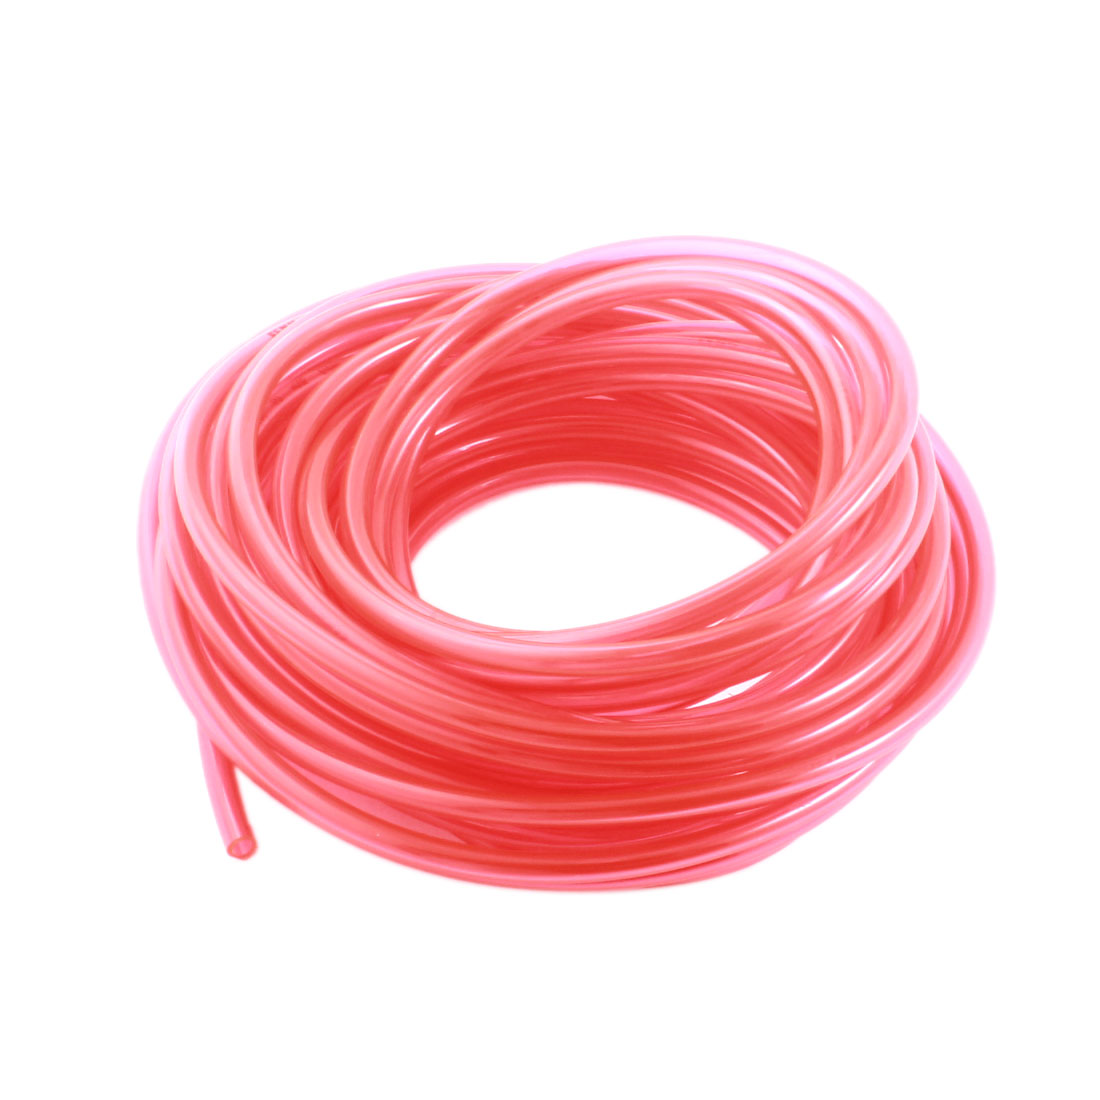 33Ft 4x6mm Air Compressor Fuel Gas Petrol Diesel PU Line Tube Hose Clear Red